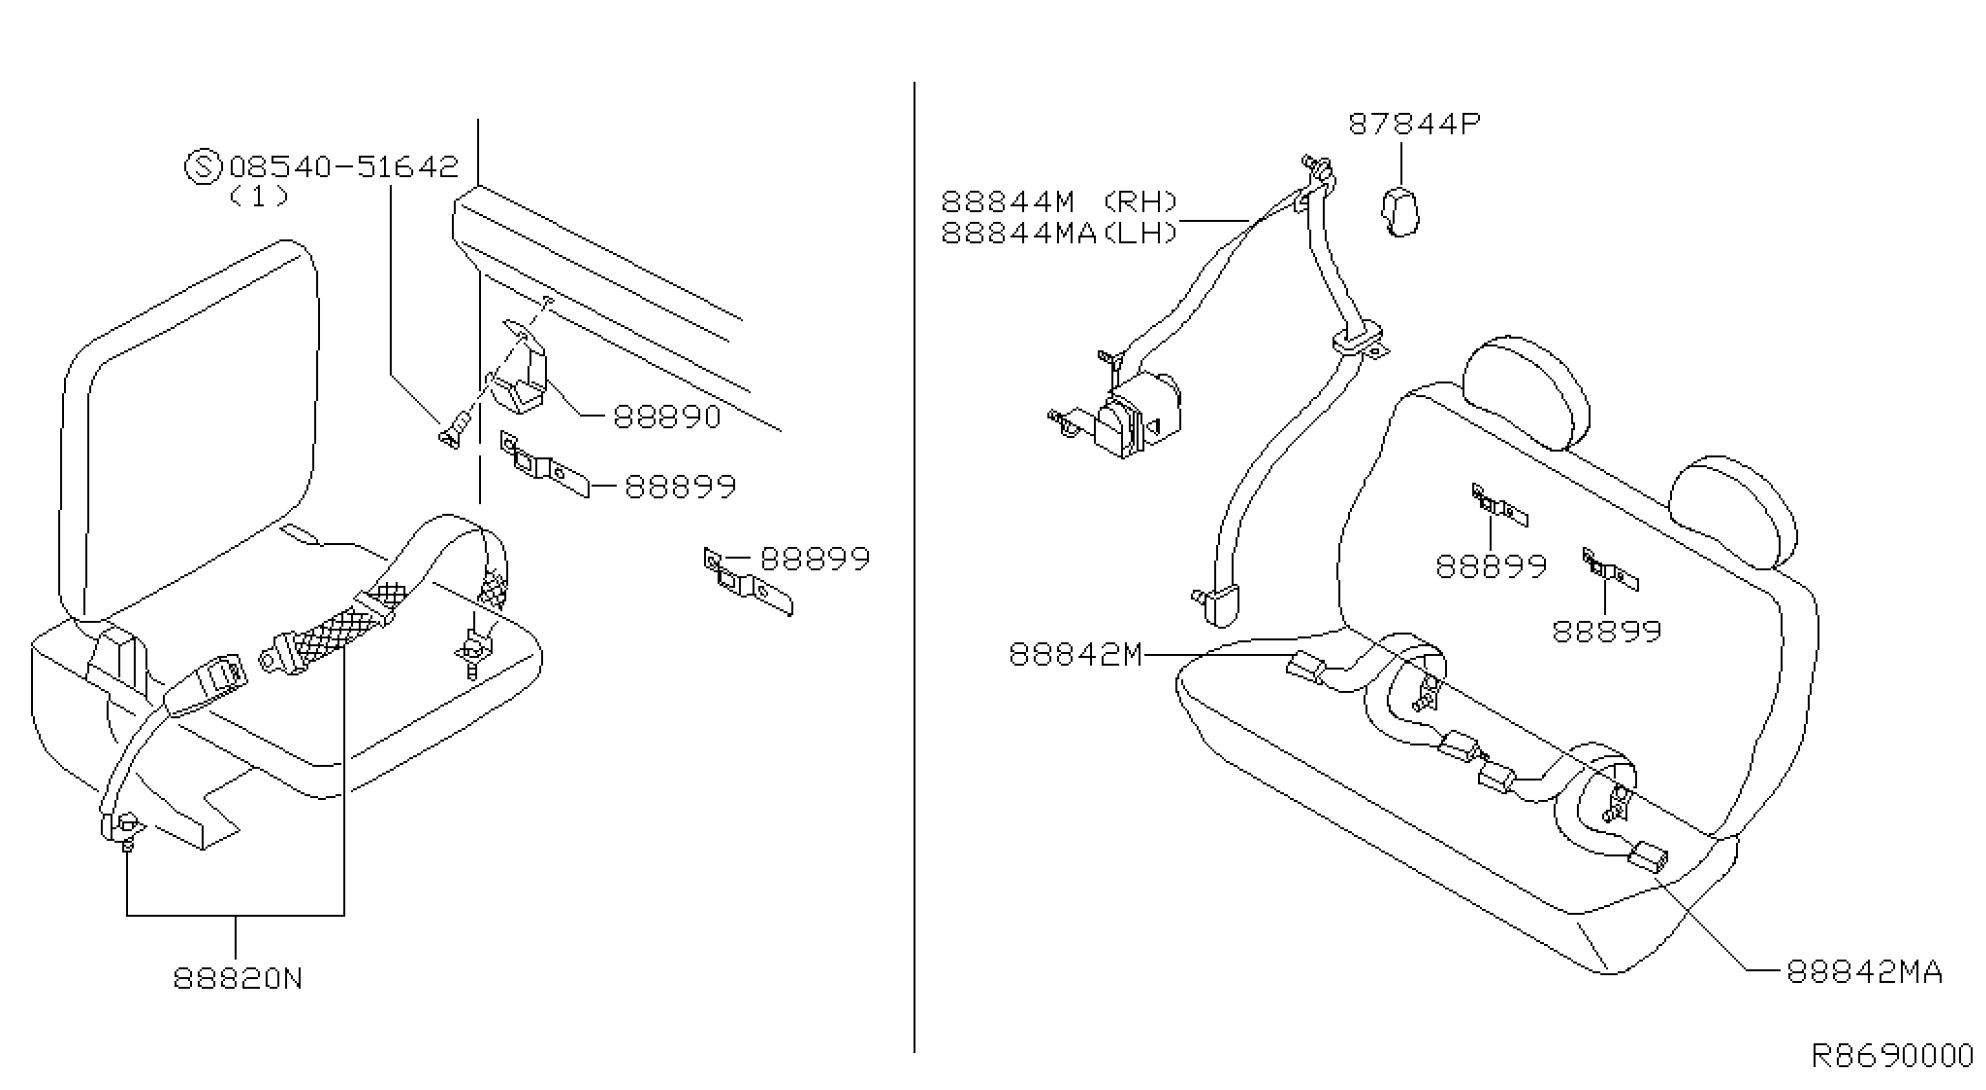 Seat Belt Assembly Diagram Nissan Frontier Crew Cab Oem Parts Nissan Usa Estore Of Seat Belt Assembly Diagram